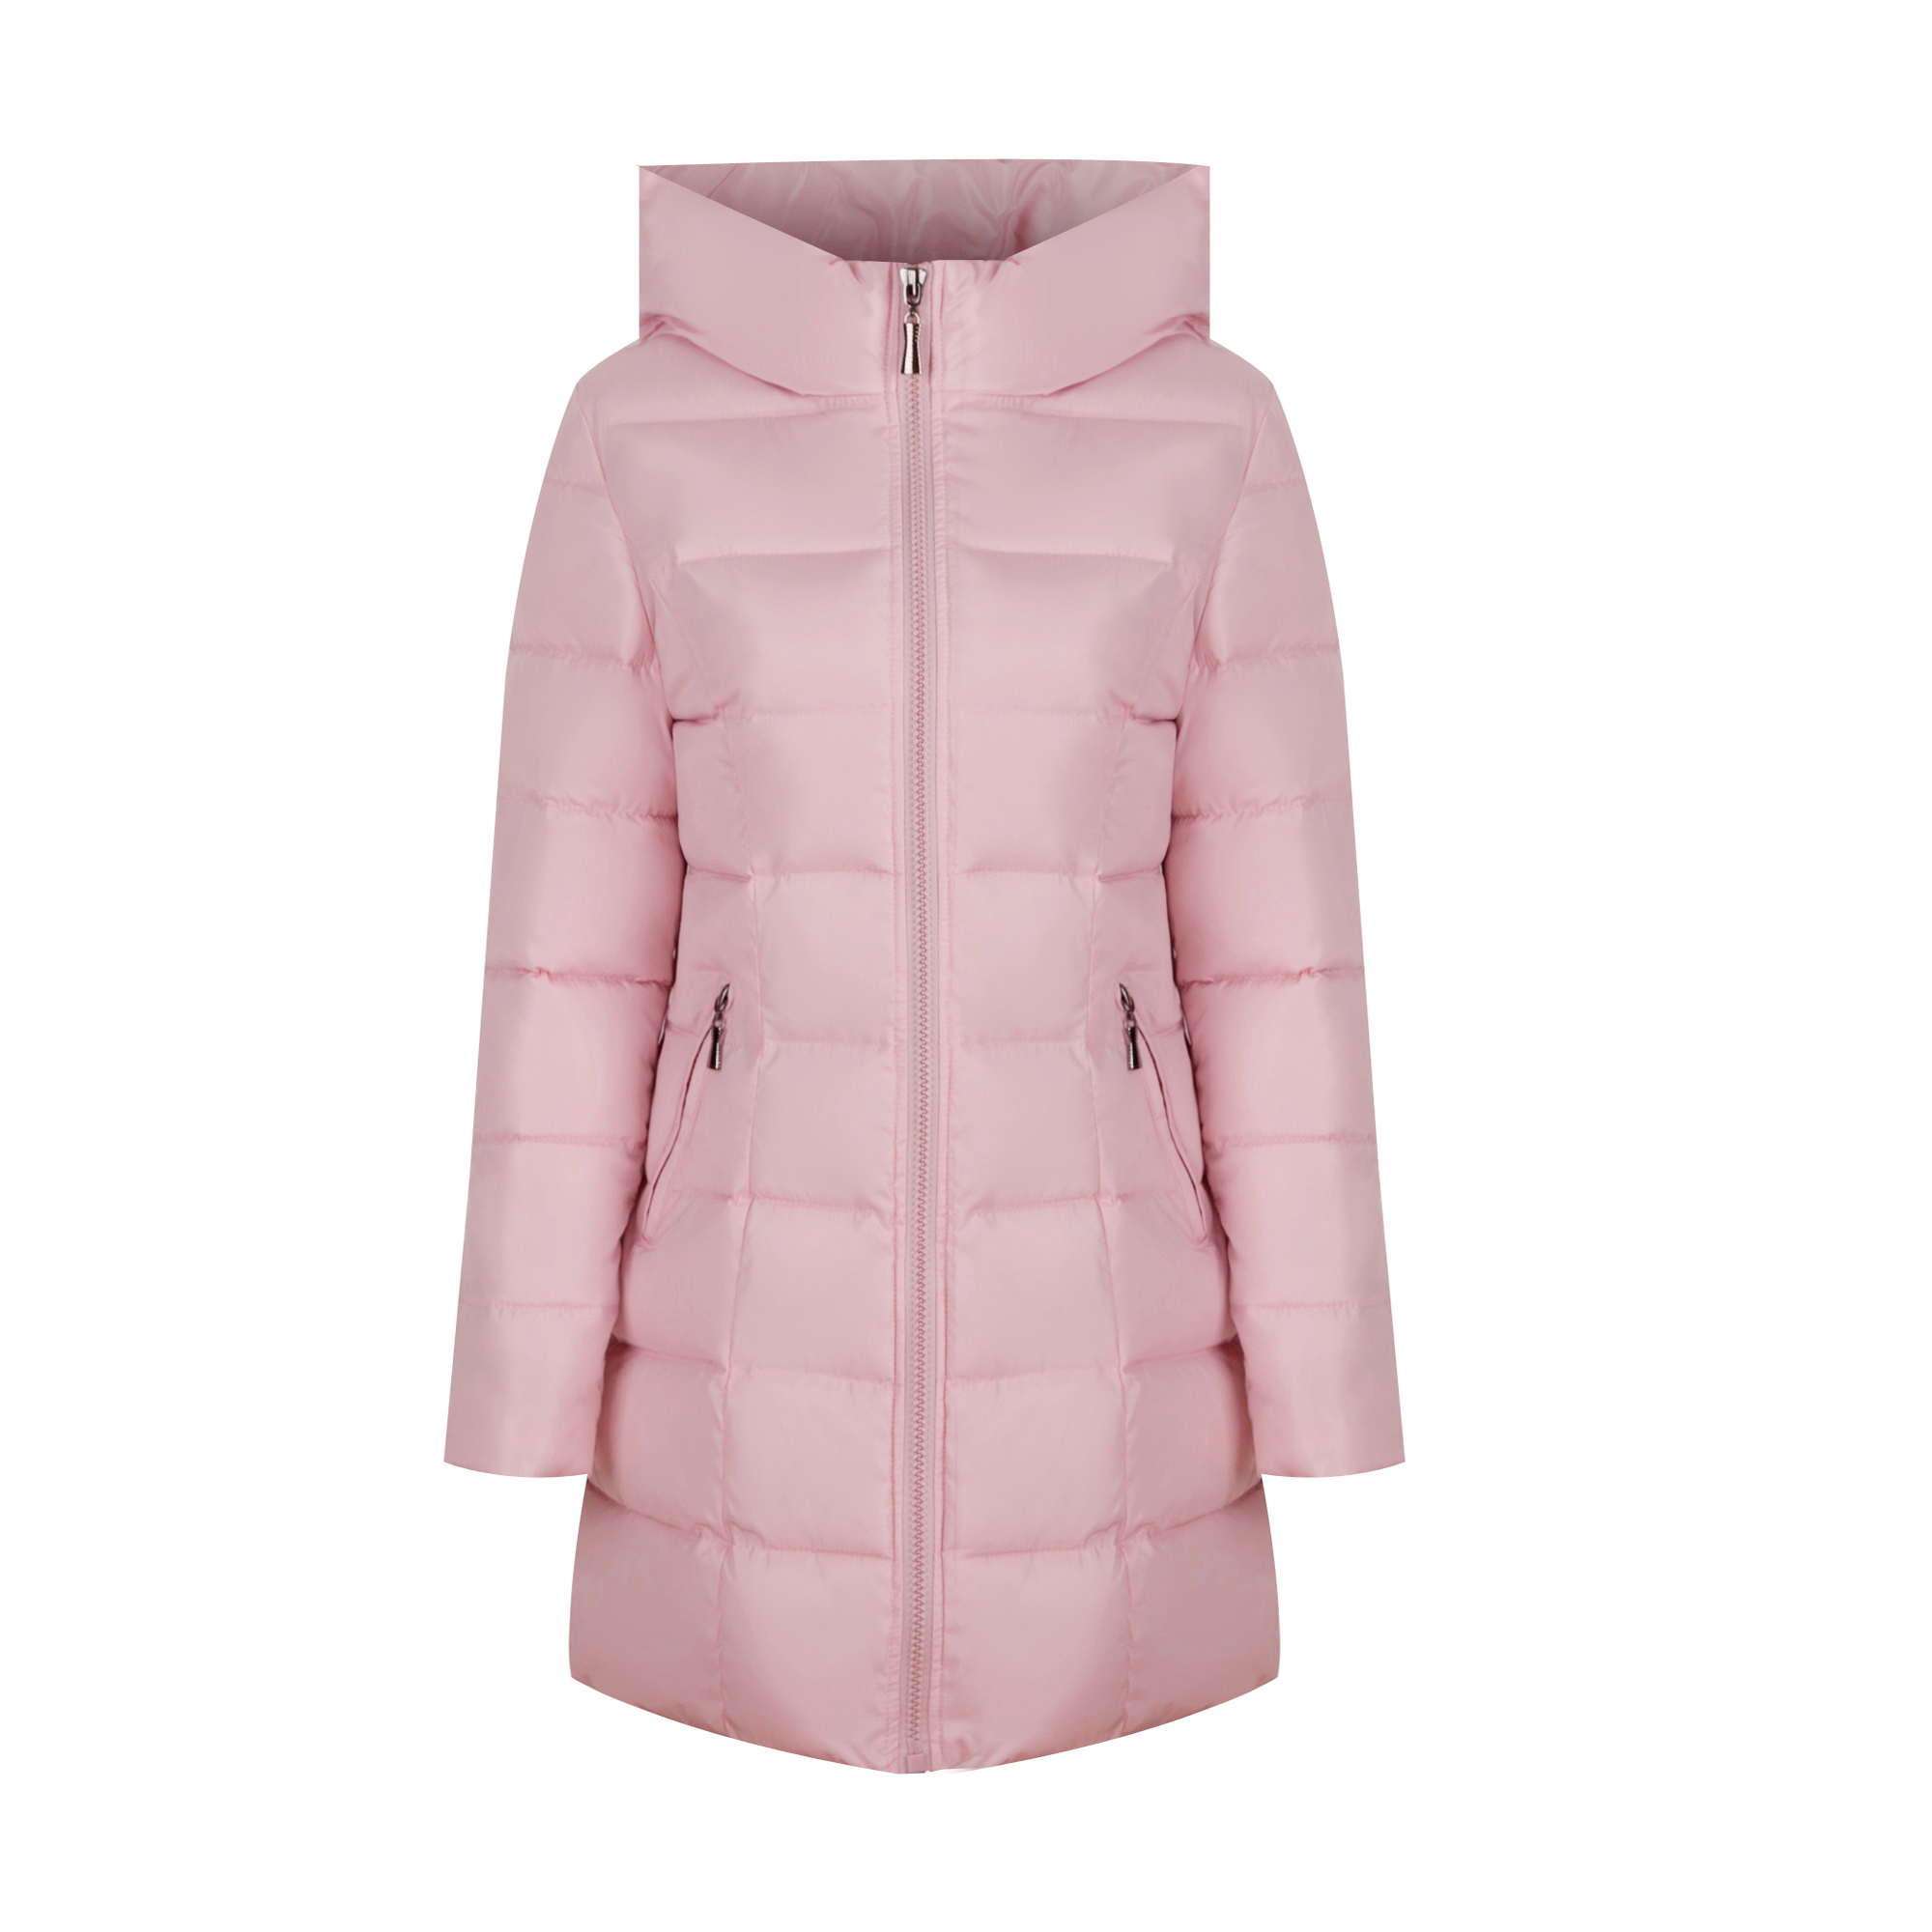 New 2017 Winter Jacket Women Cotton Padded Slim Hooded Parkas Girl Thick  Overcoat  Plus Size Warm Winter Coat 2017 new winter jacket women lovely anime printing cotton padded student parka hooded overcoat thick warm long girl s slim coat